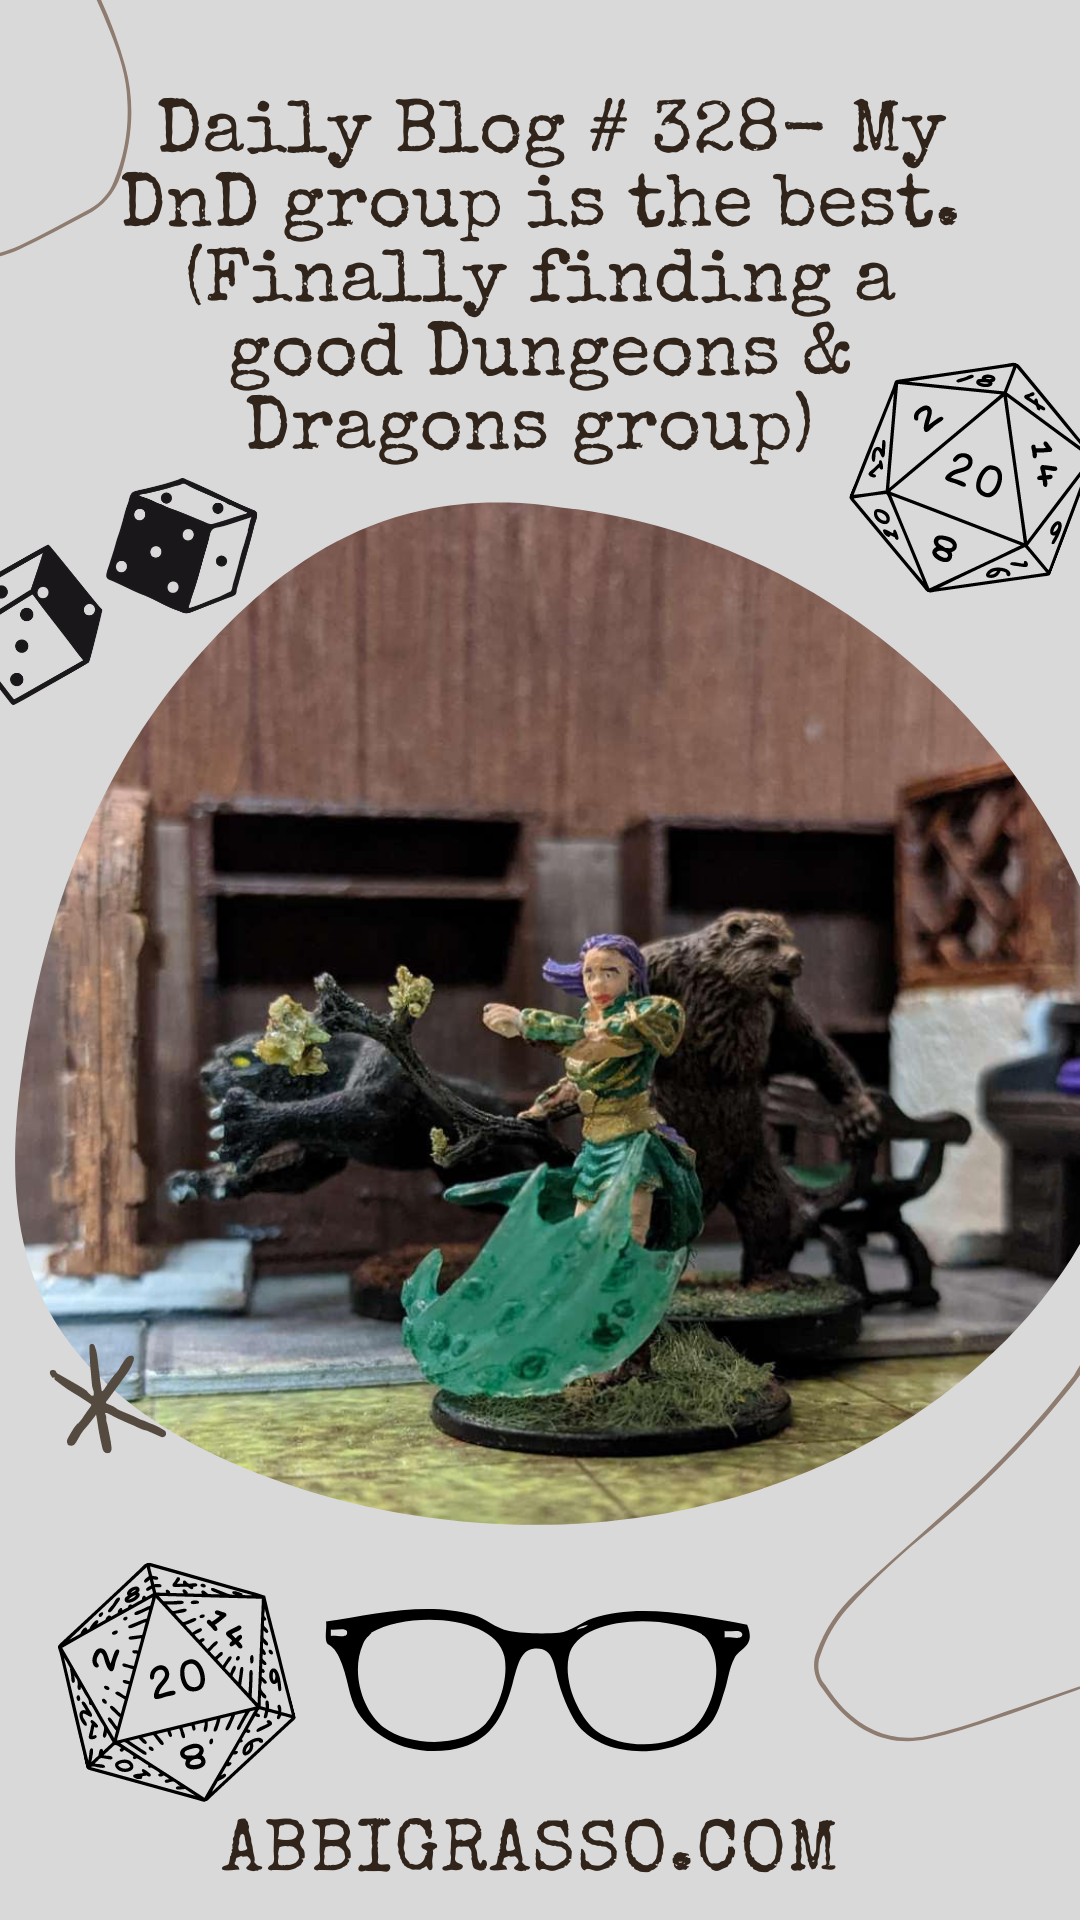 Daily Blog # 328- My DnD group is the best. (Finally finding a good Dungeons and Dragons group)